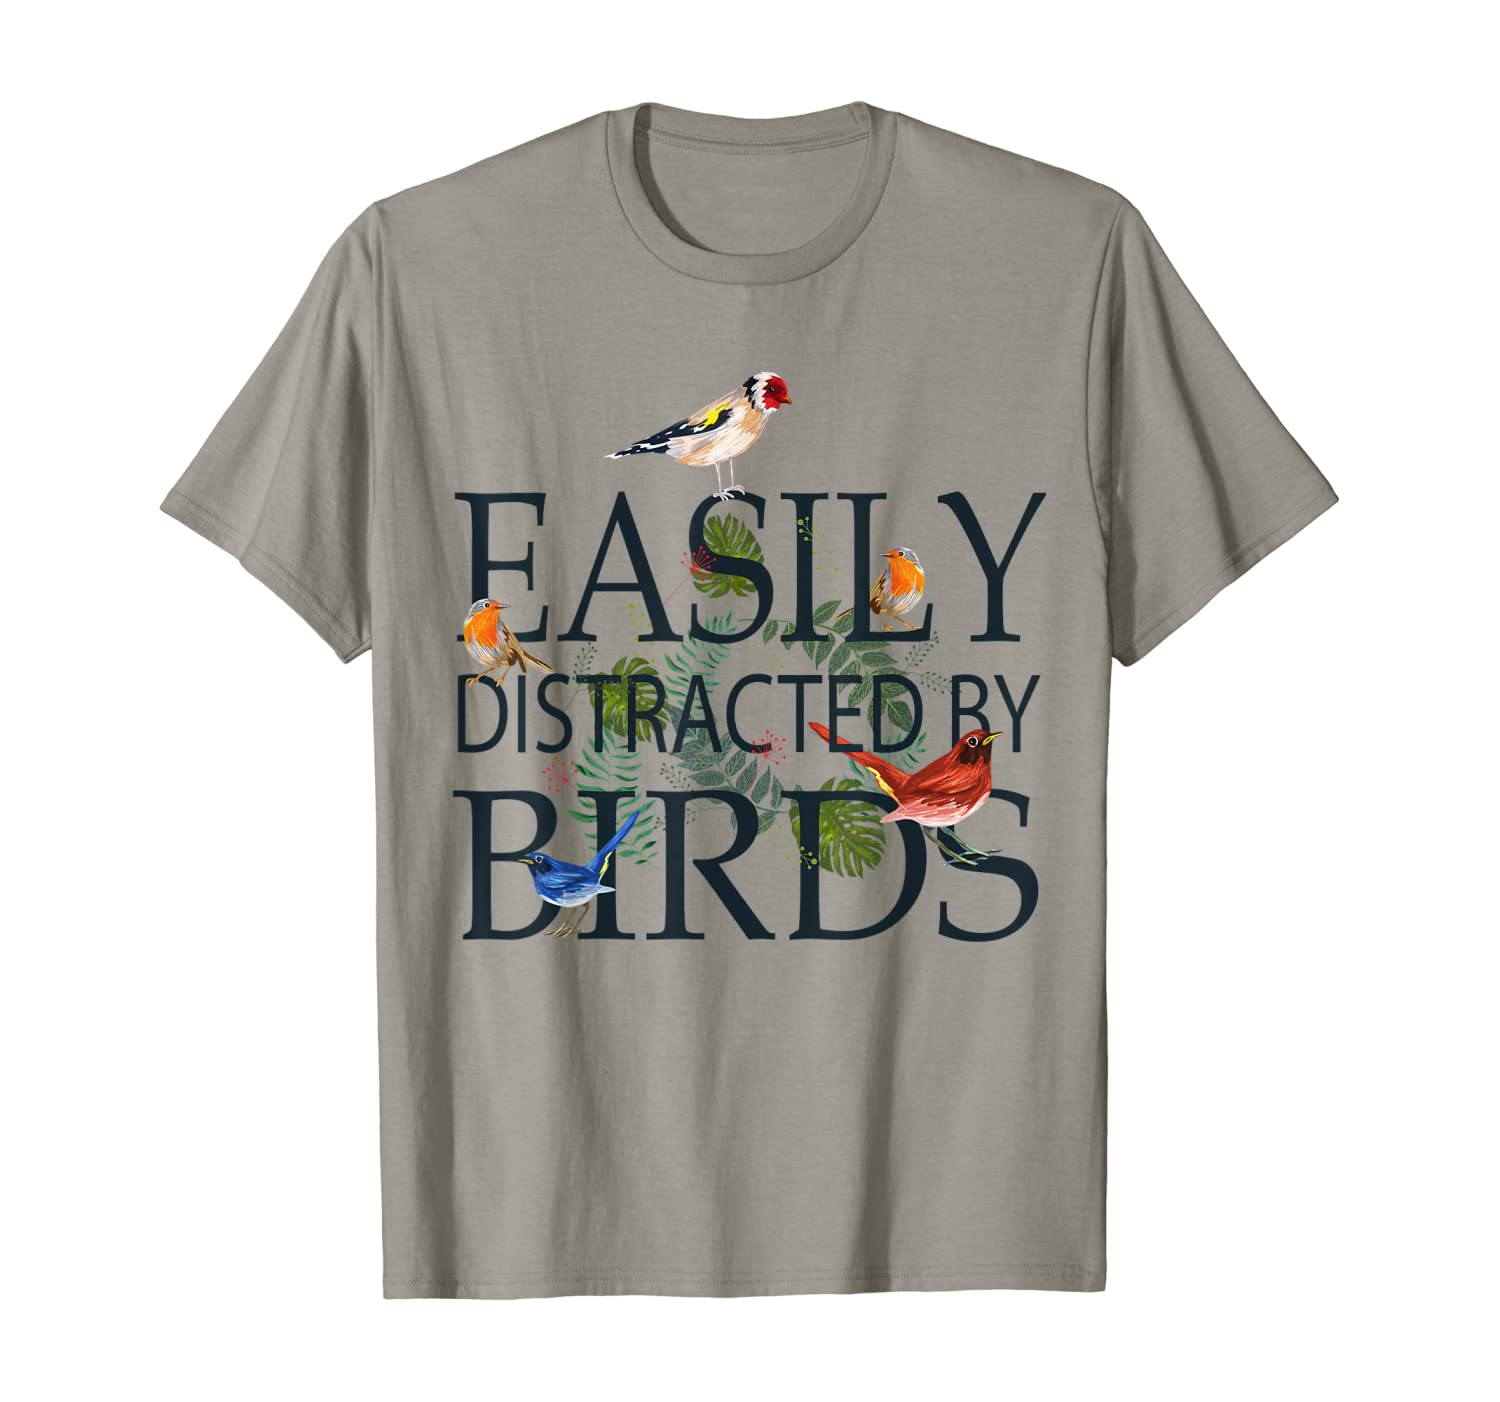 Bird Lovers Gifts For Women Men | EASILY DISTRACTED BY BIRDS T-Shirt